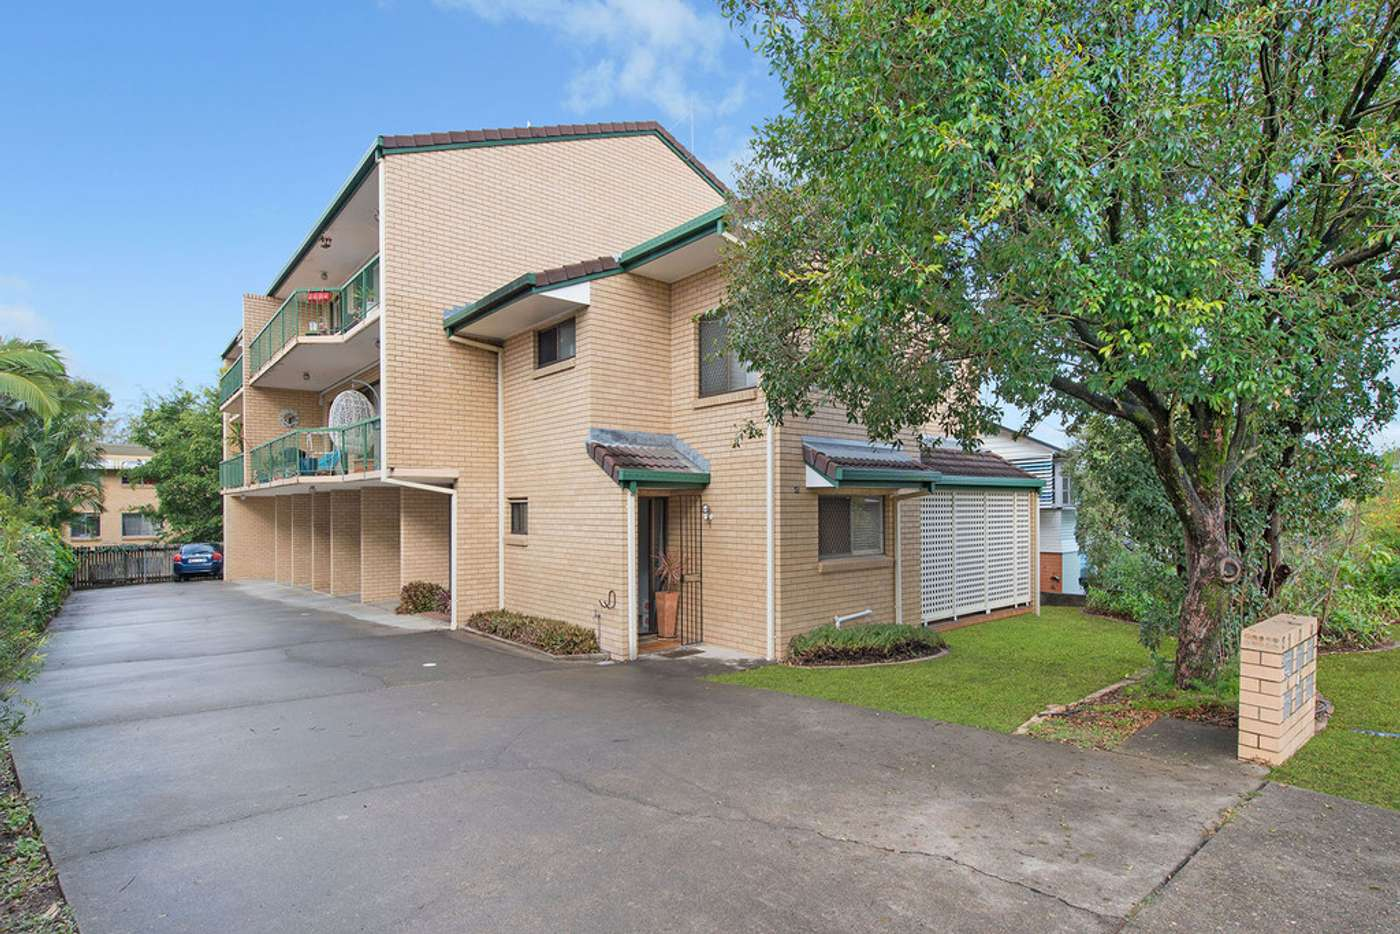 Sixth view of Homely apartment listing, 45 Real Street, Annerley QLD 4103